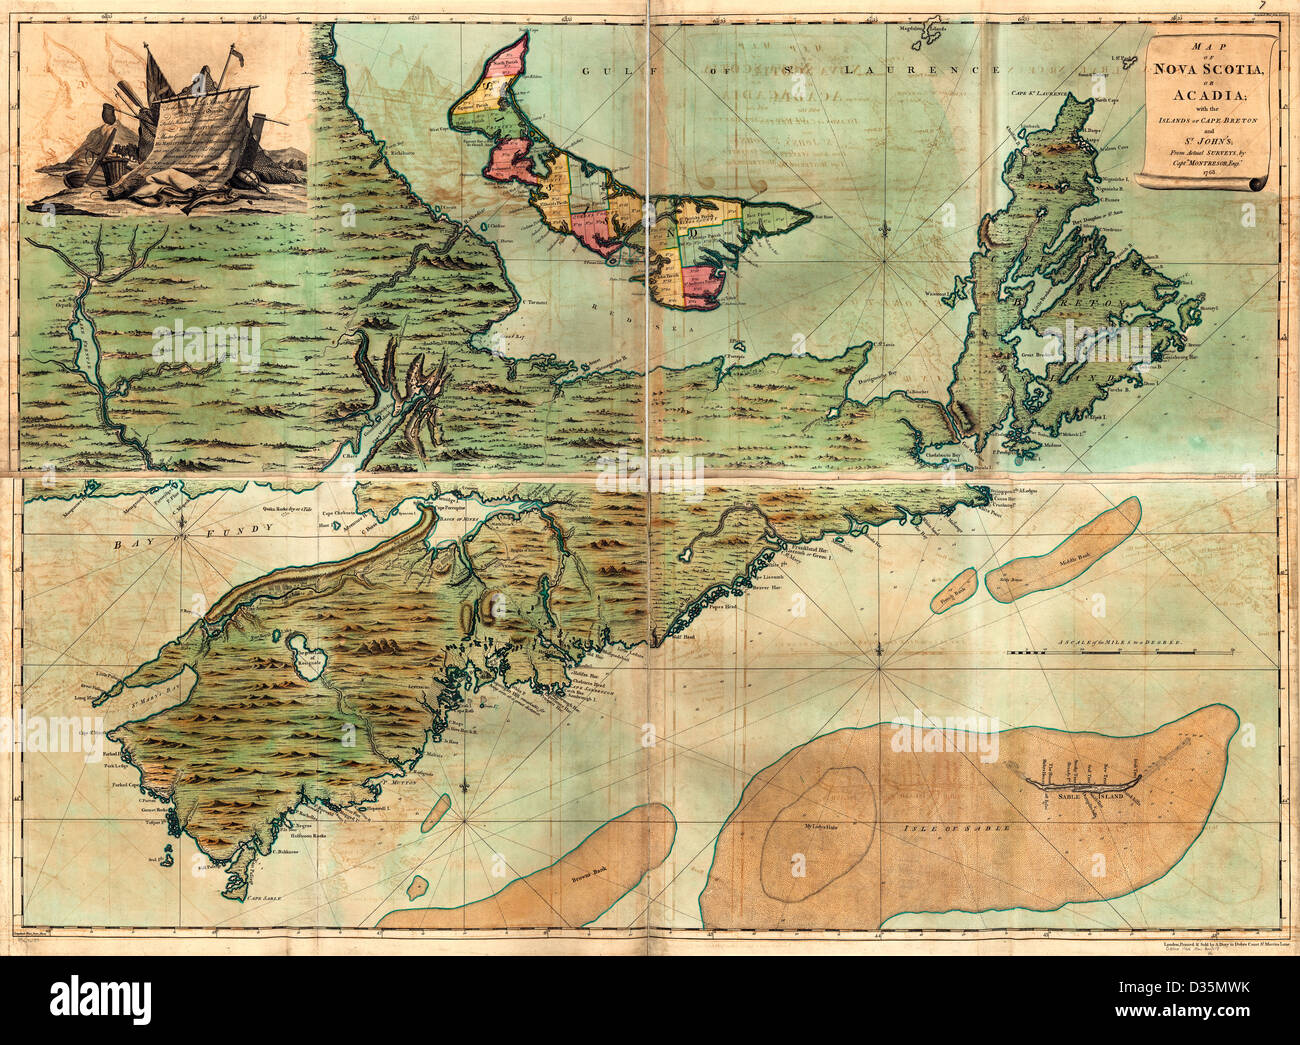 Map of Nova Scotia, or Acadia; with the islands of Cape Breton and St. John's, from actual surveys, circa 1768 - Stock Image